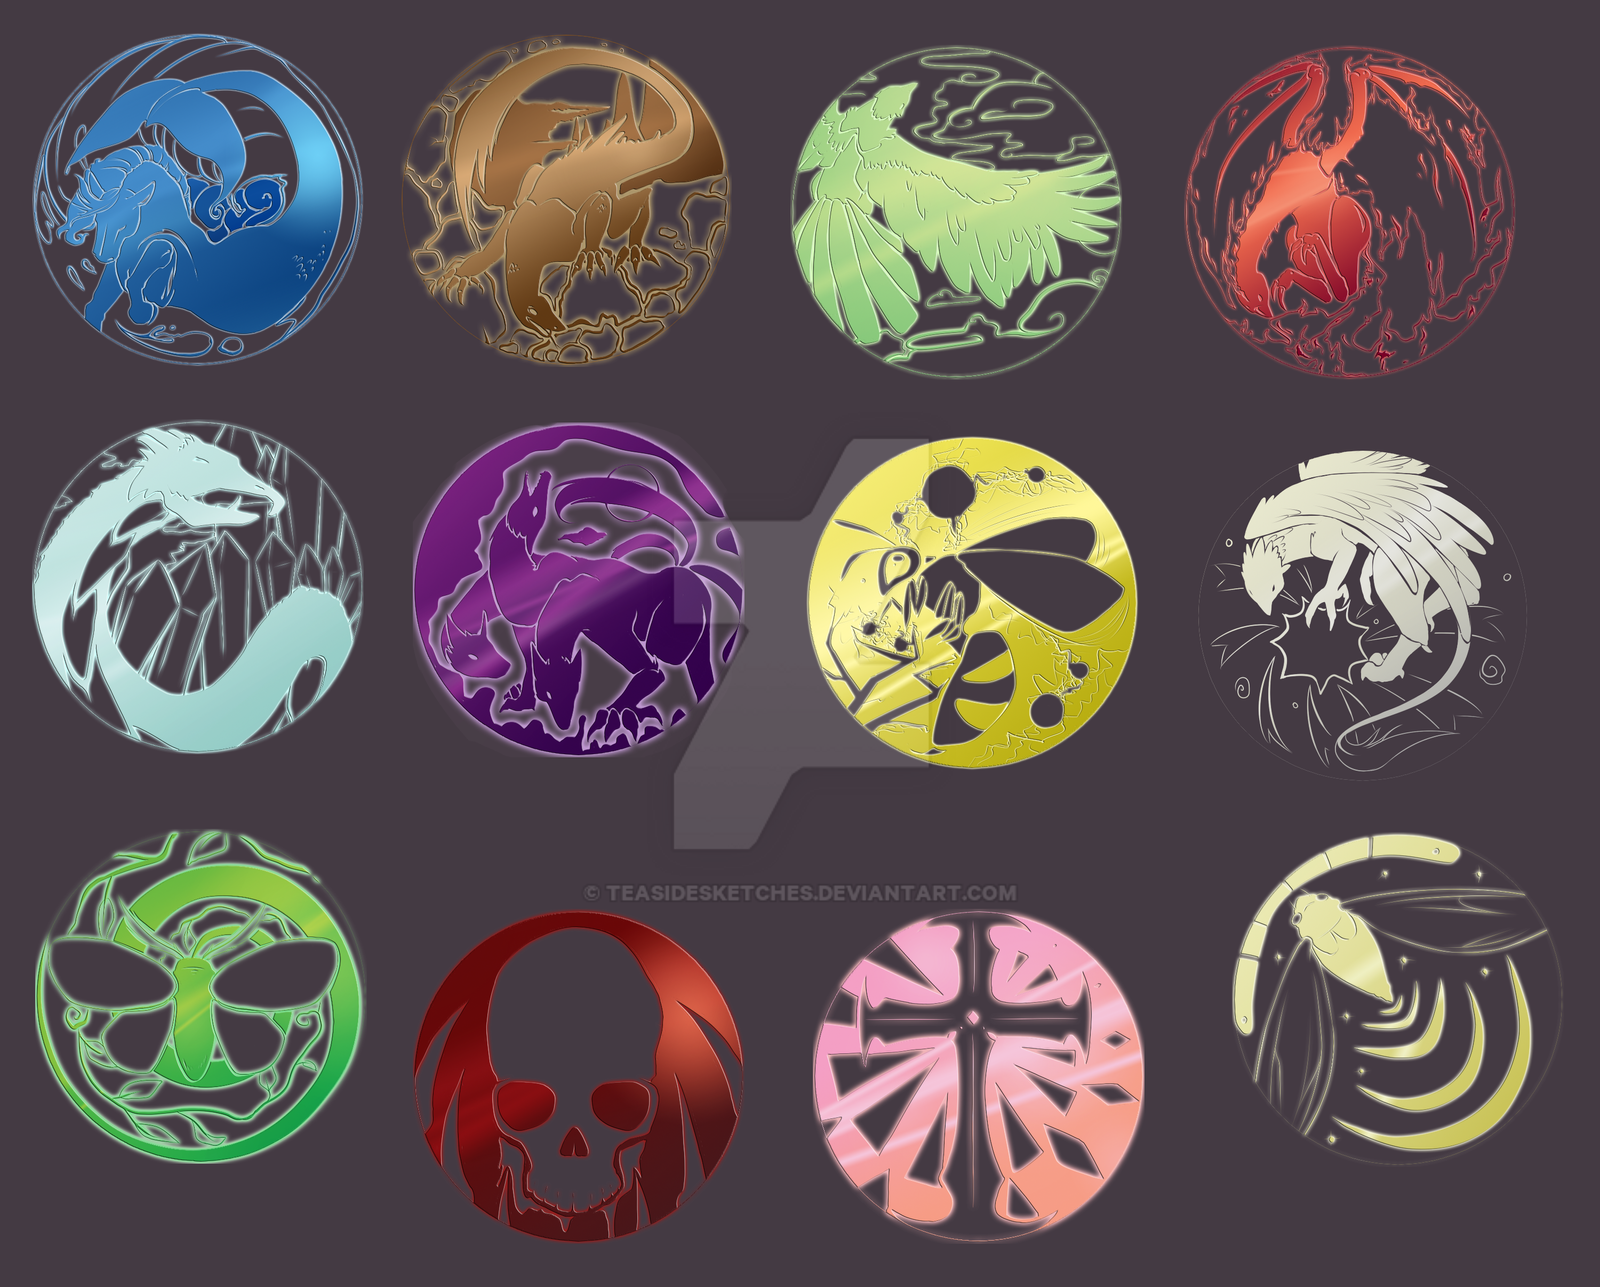 All Elements Of Art : Element symbol reference sheet by teasidesketches on